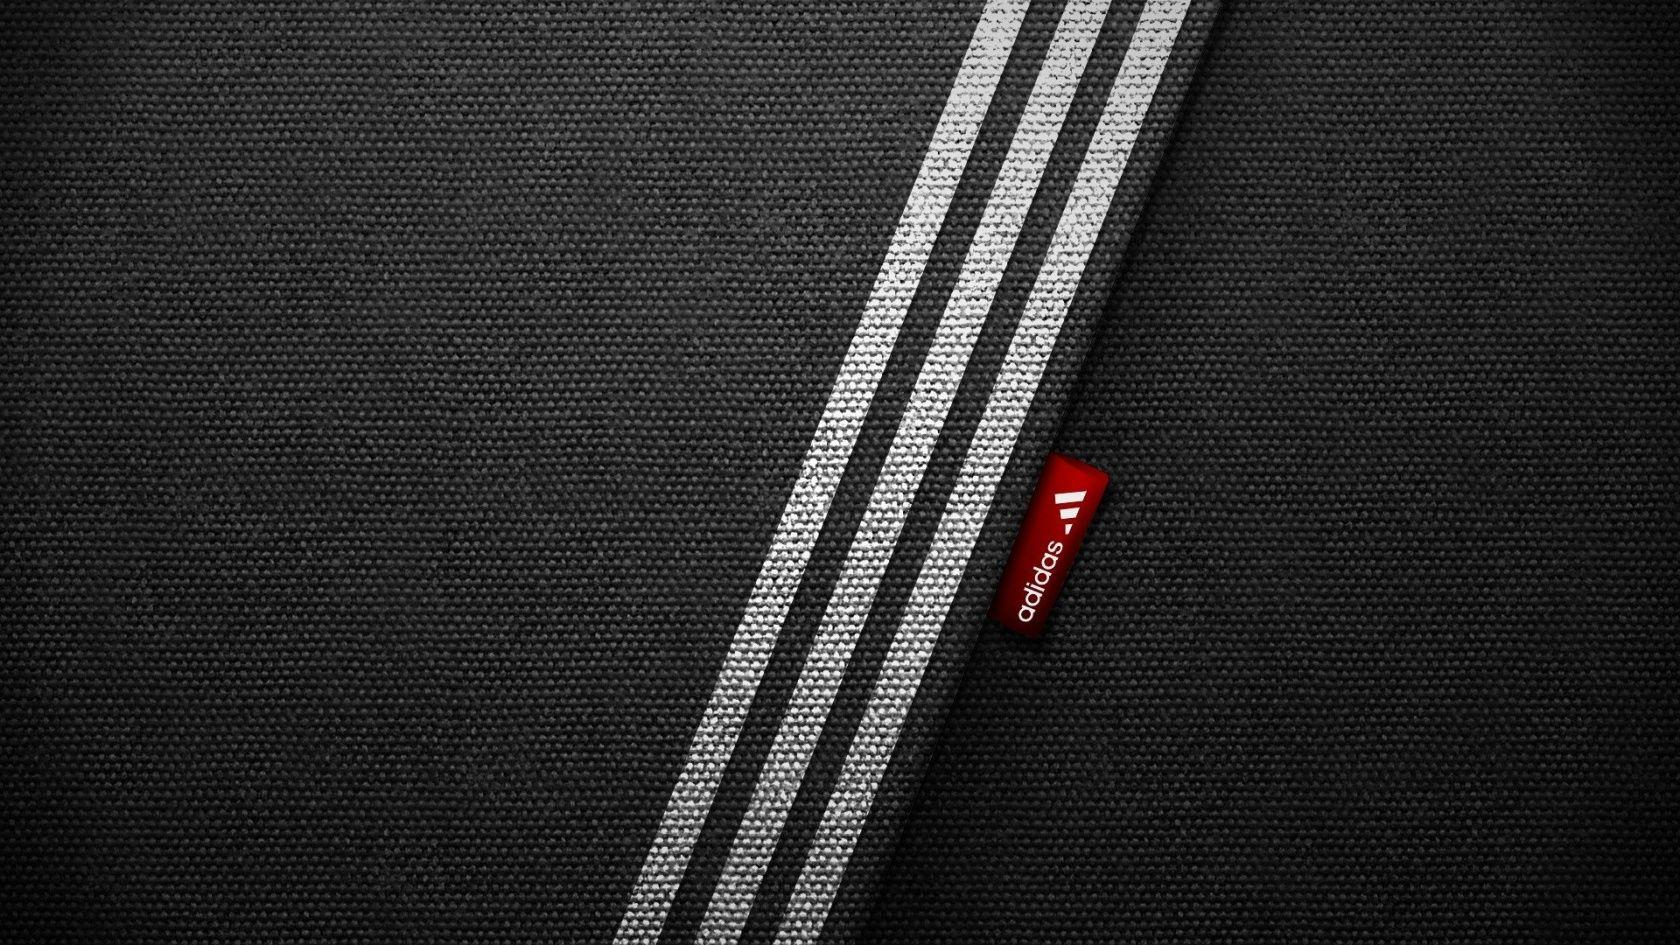 Clean Adidas Wallpapers - 9566